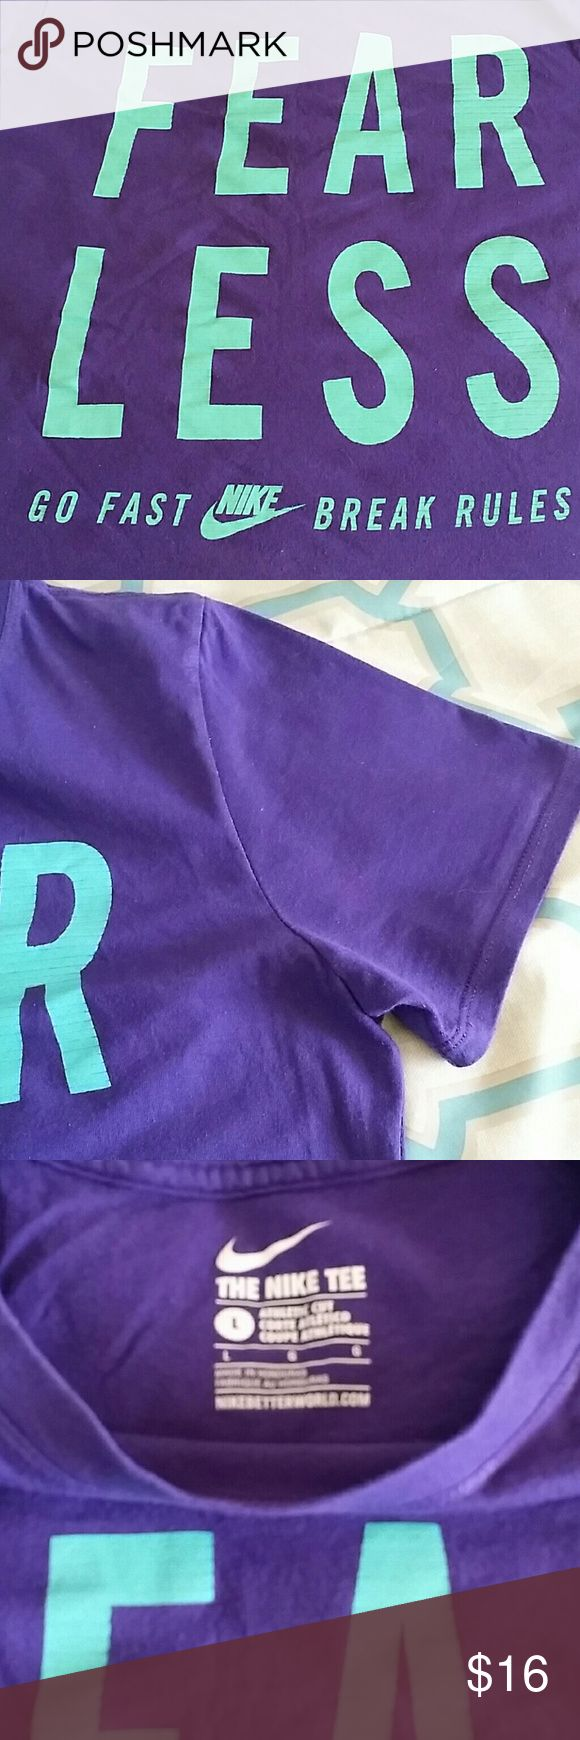 "Nike Athletic Cut Workout Shirt. ""Fear Less. Go Fast Break Rules.""  Purple Nike Athletic Cut workout shirt in great condition.  All of my workout shirts are washed in cold water and none of them are dried, helping to keep their shape and color. Nike Tops Tees - Short Sleeve"